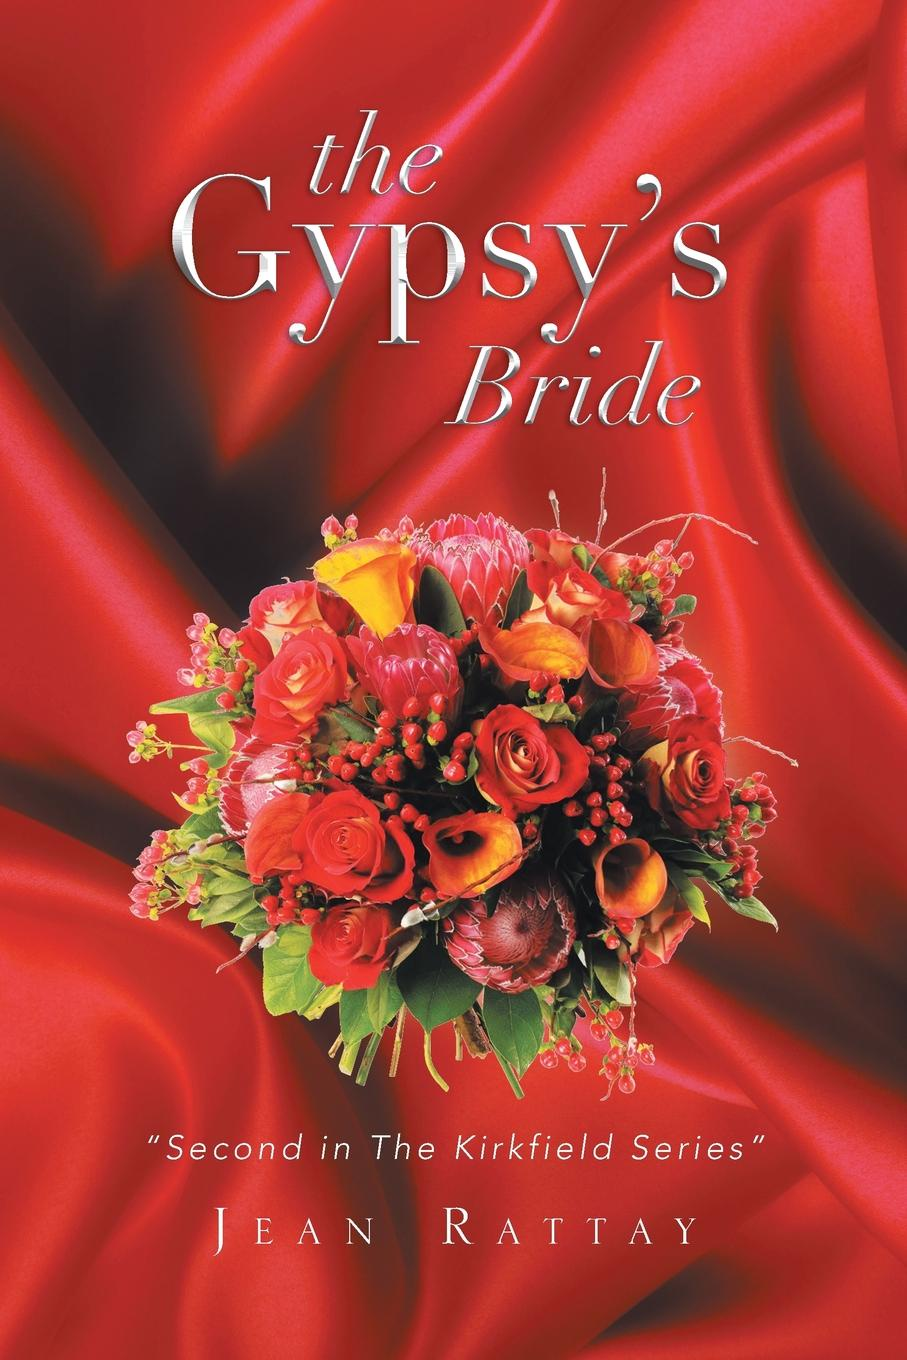 Jean Rattay The Gypsy's Bride. Second in the Kirkfield Series donna alward the cowboy s convenient bride